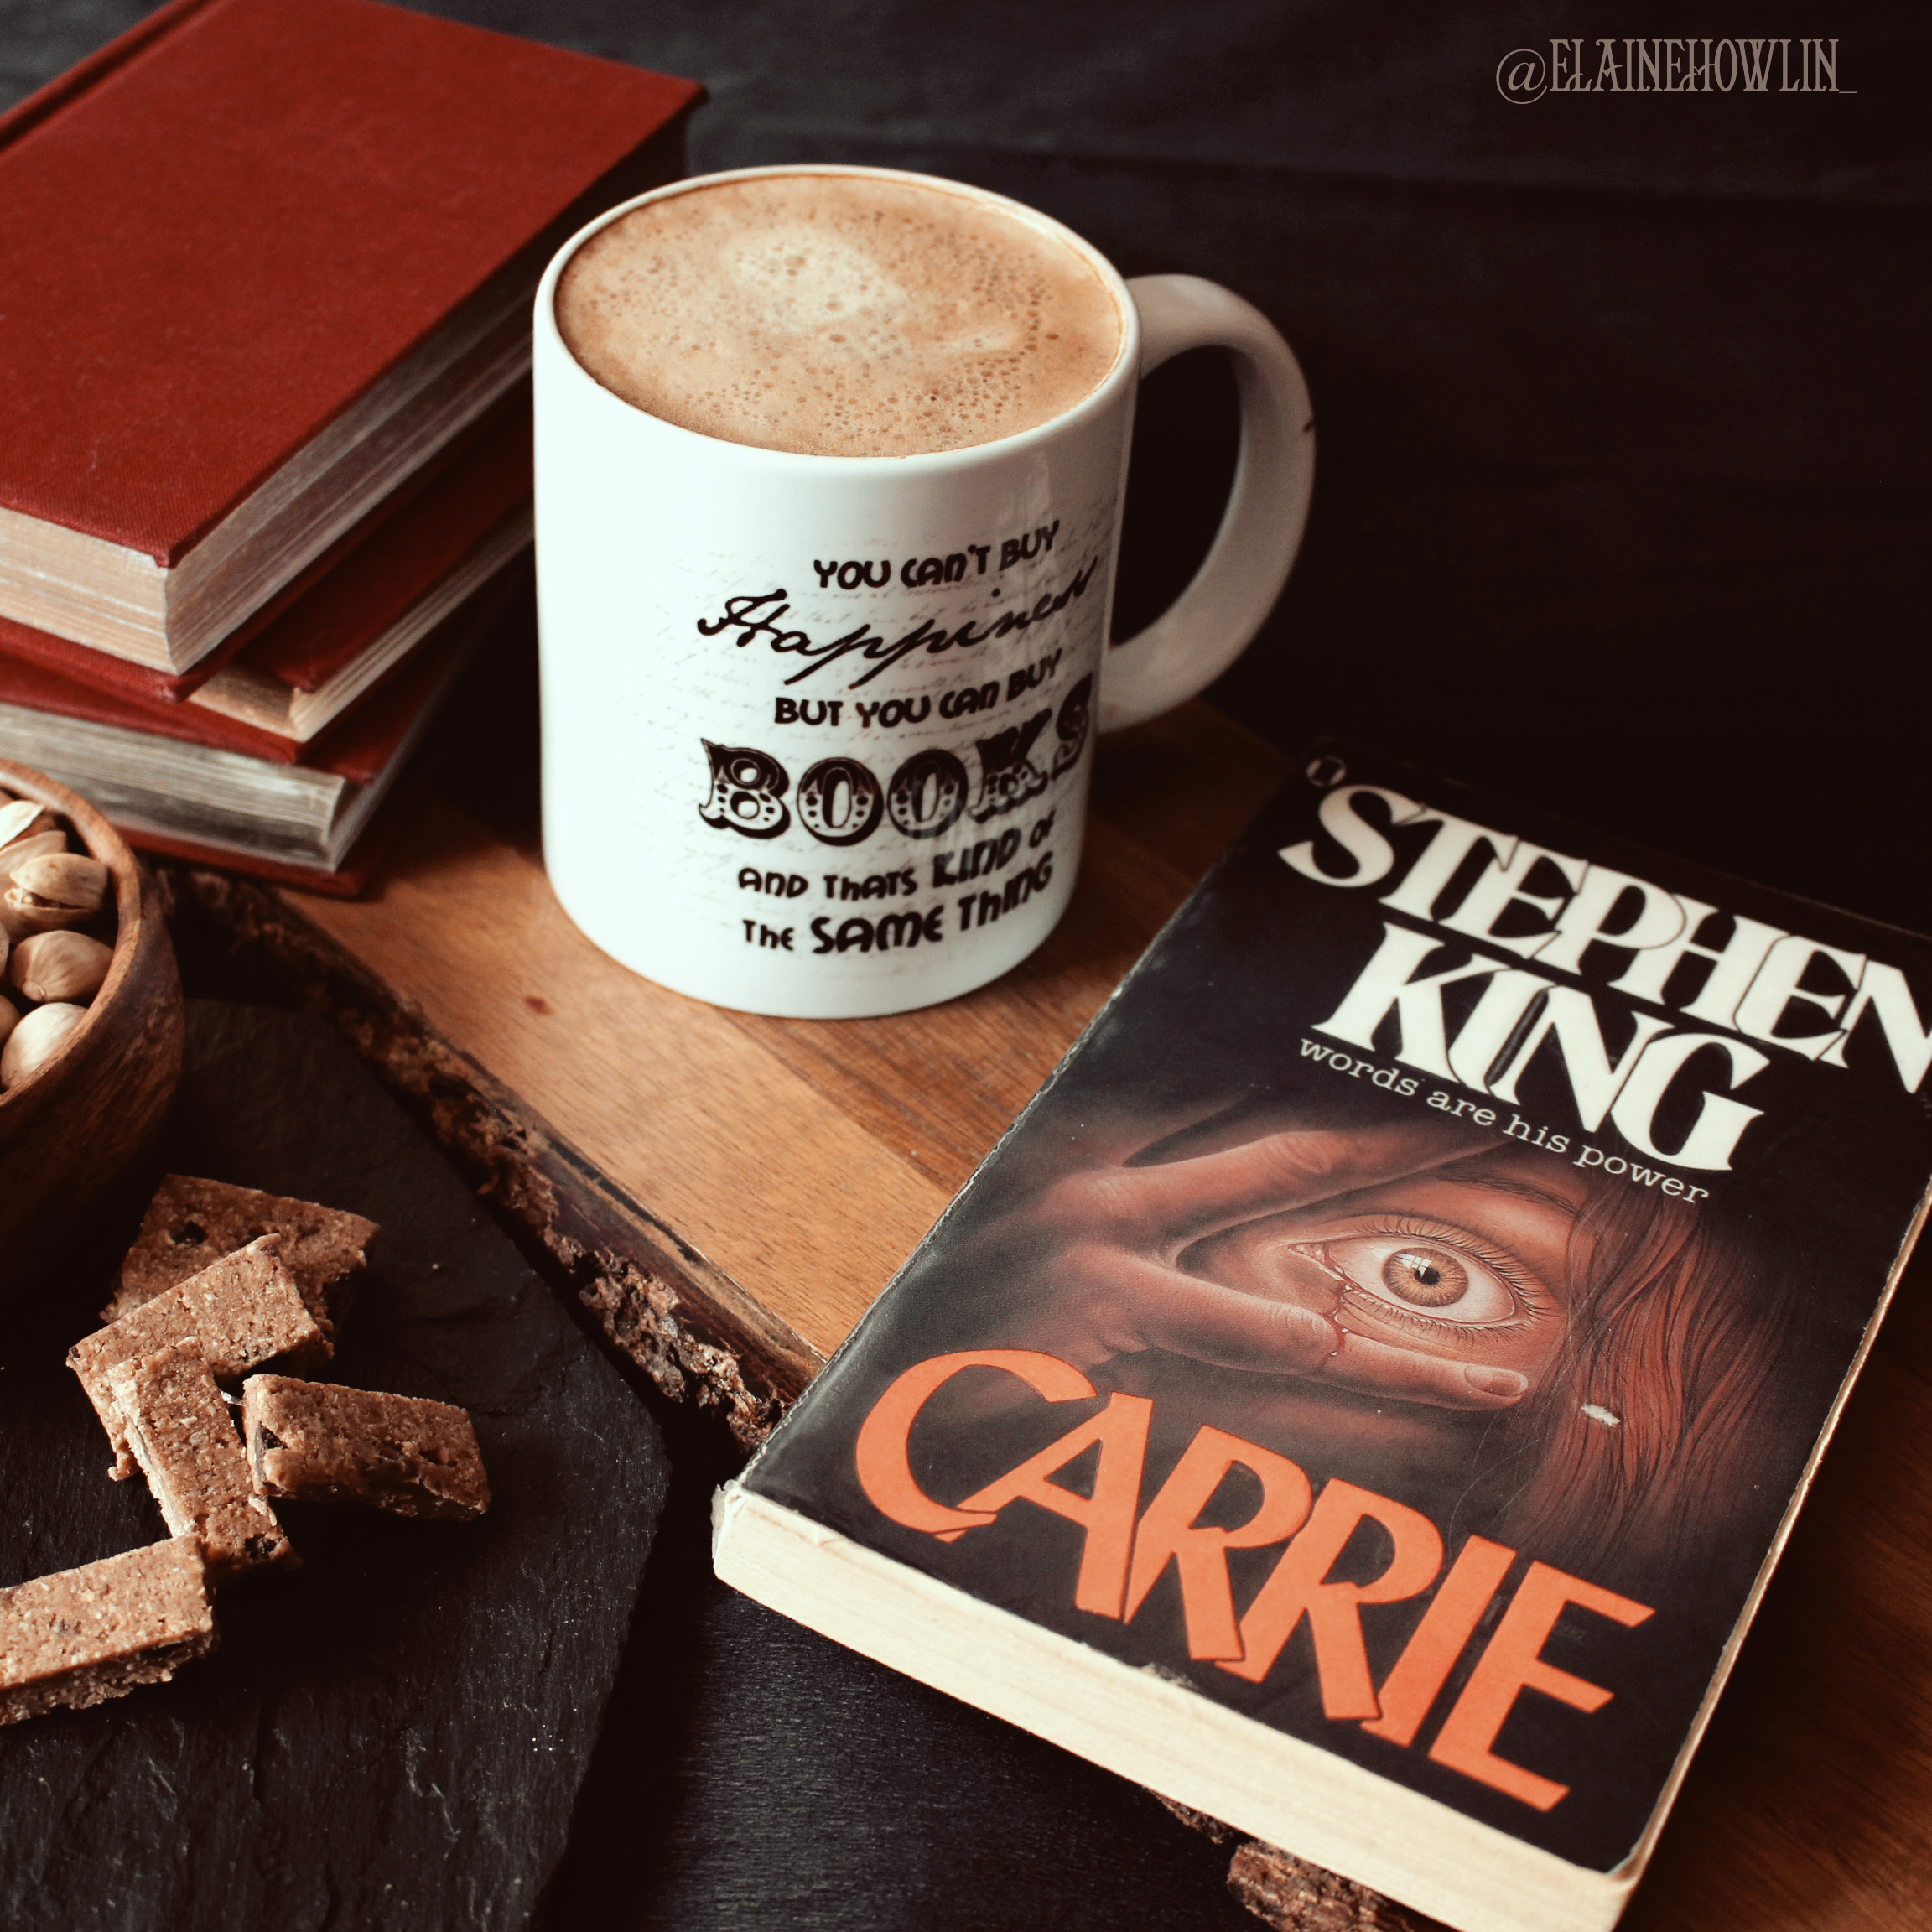 Carrie by Stephen King Elaine Howlin Book Blog